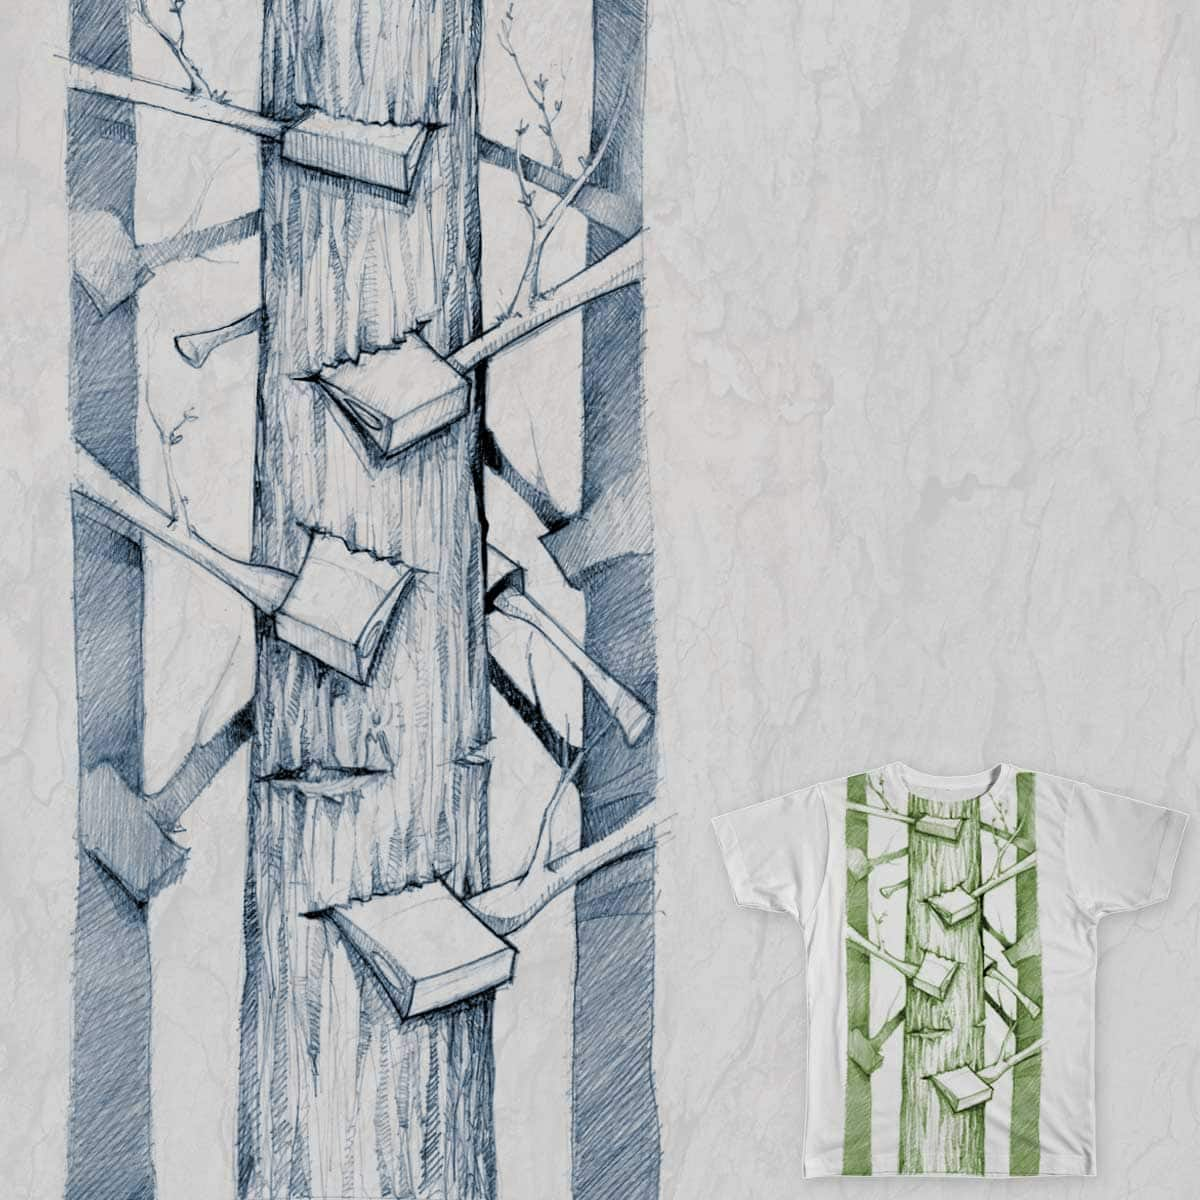 Trees by tronco22 on Threadless